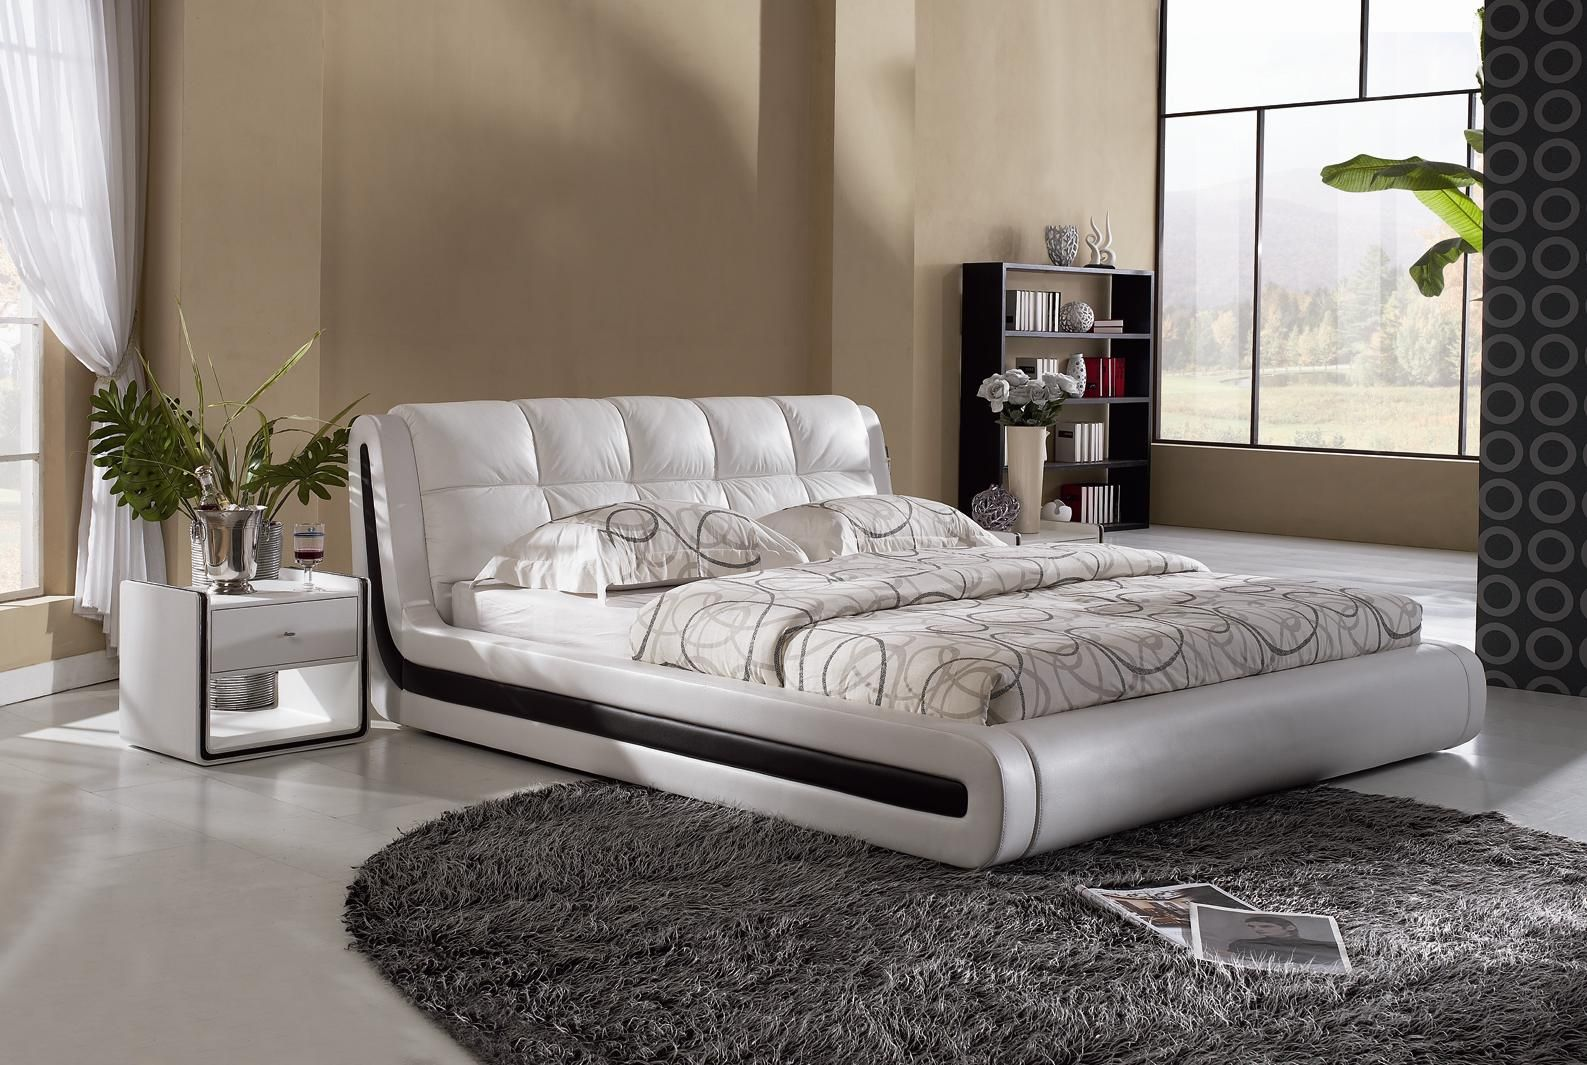 Modern bed design bedrooms pinterest modern bed for Bedroom ideas in pakistan